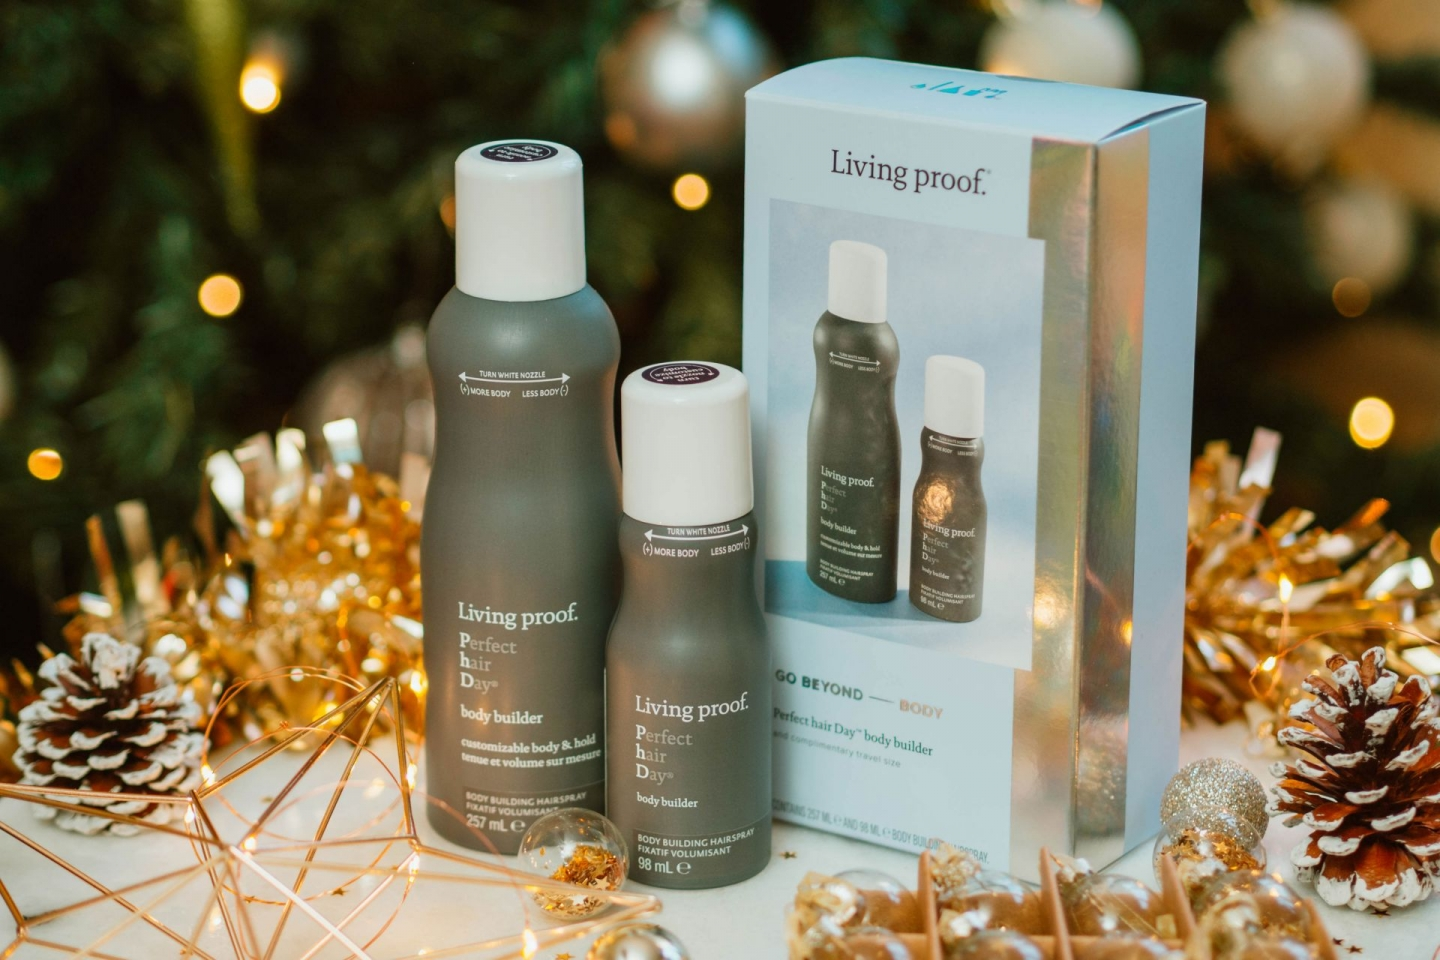 Living Proof Perfect hair Day (PhD) Dry Shampoo Gift Set